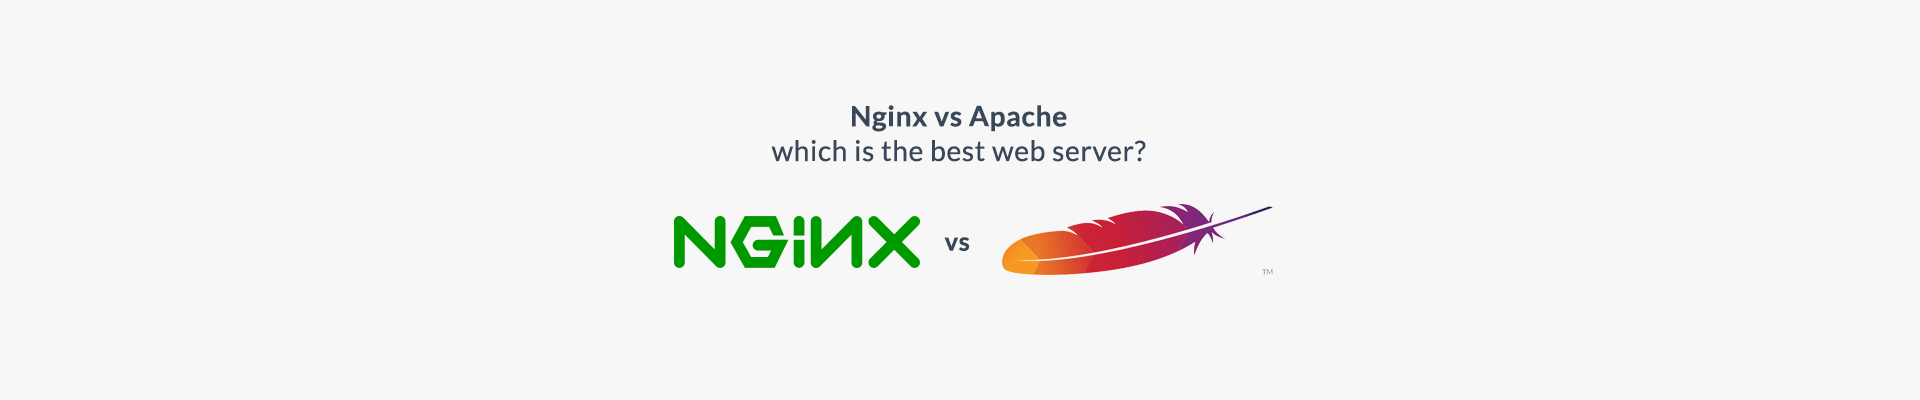 Nginx vs Apache – Which is the Best Web Server?